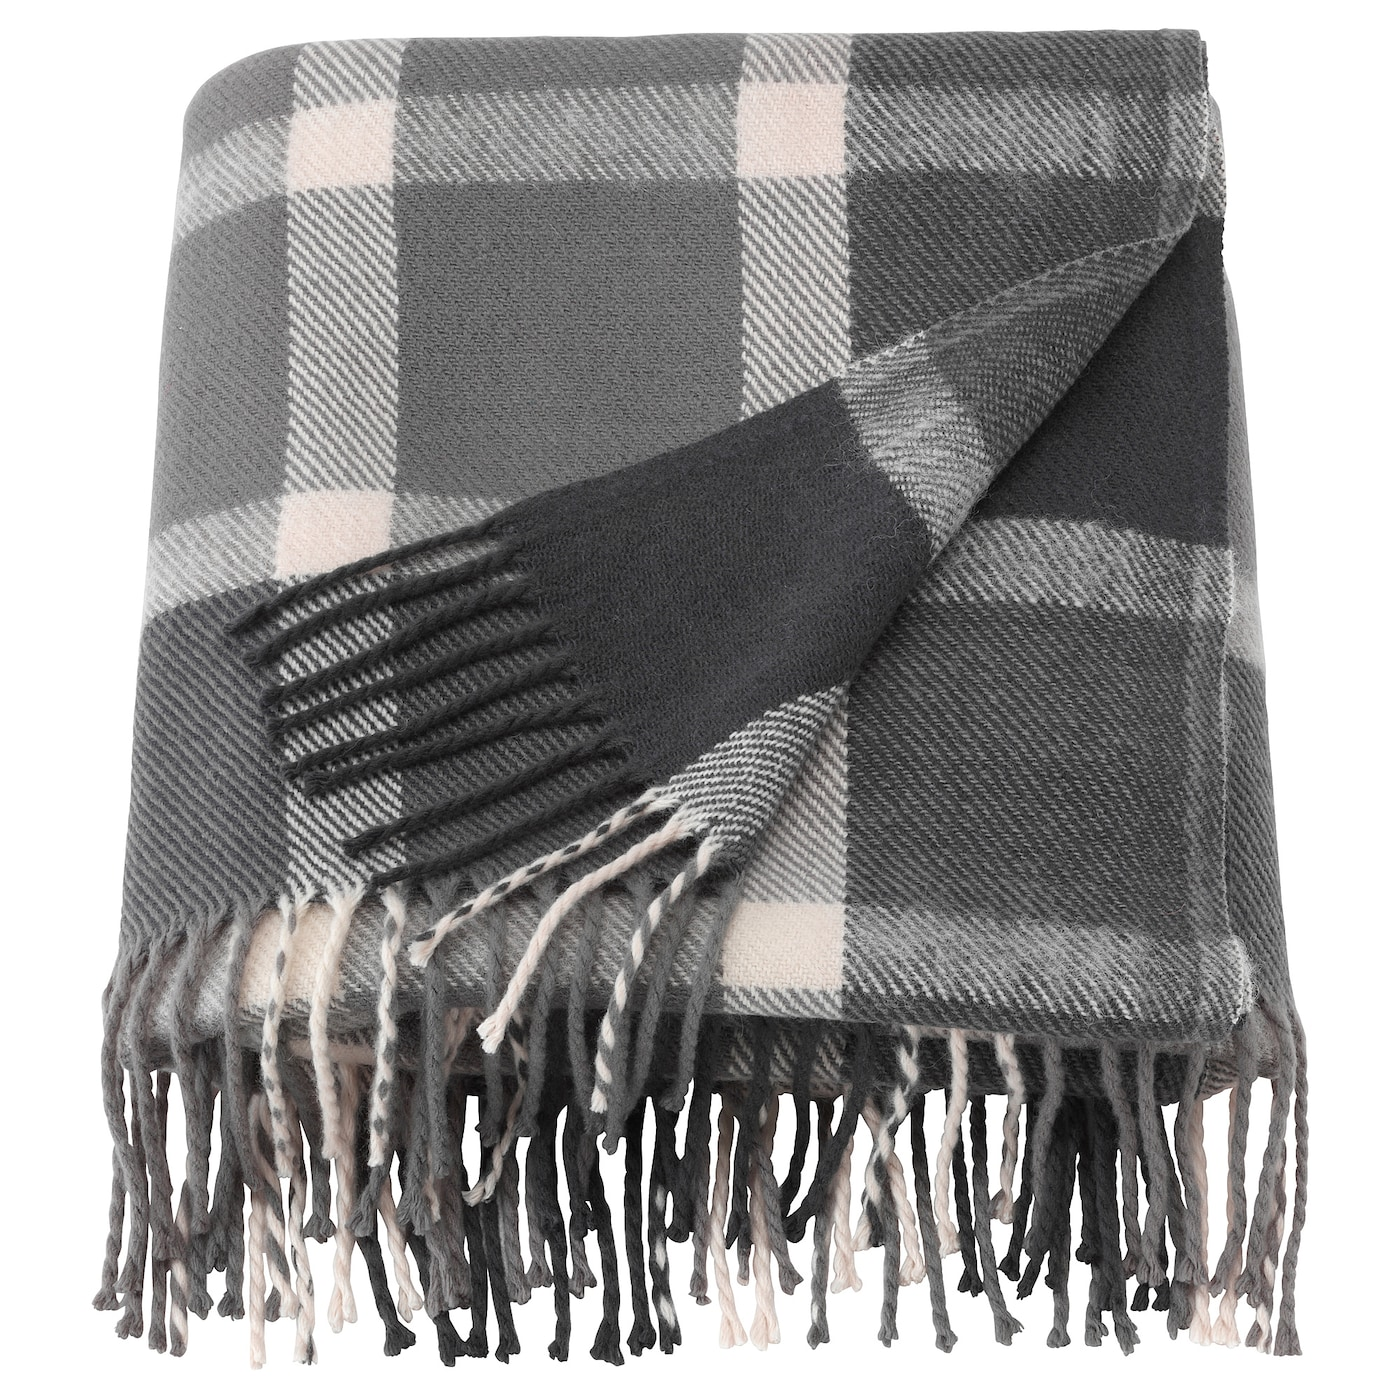 IKEA KAVELDUN plaid